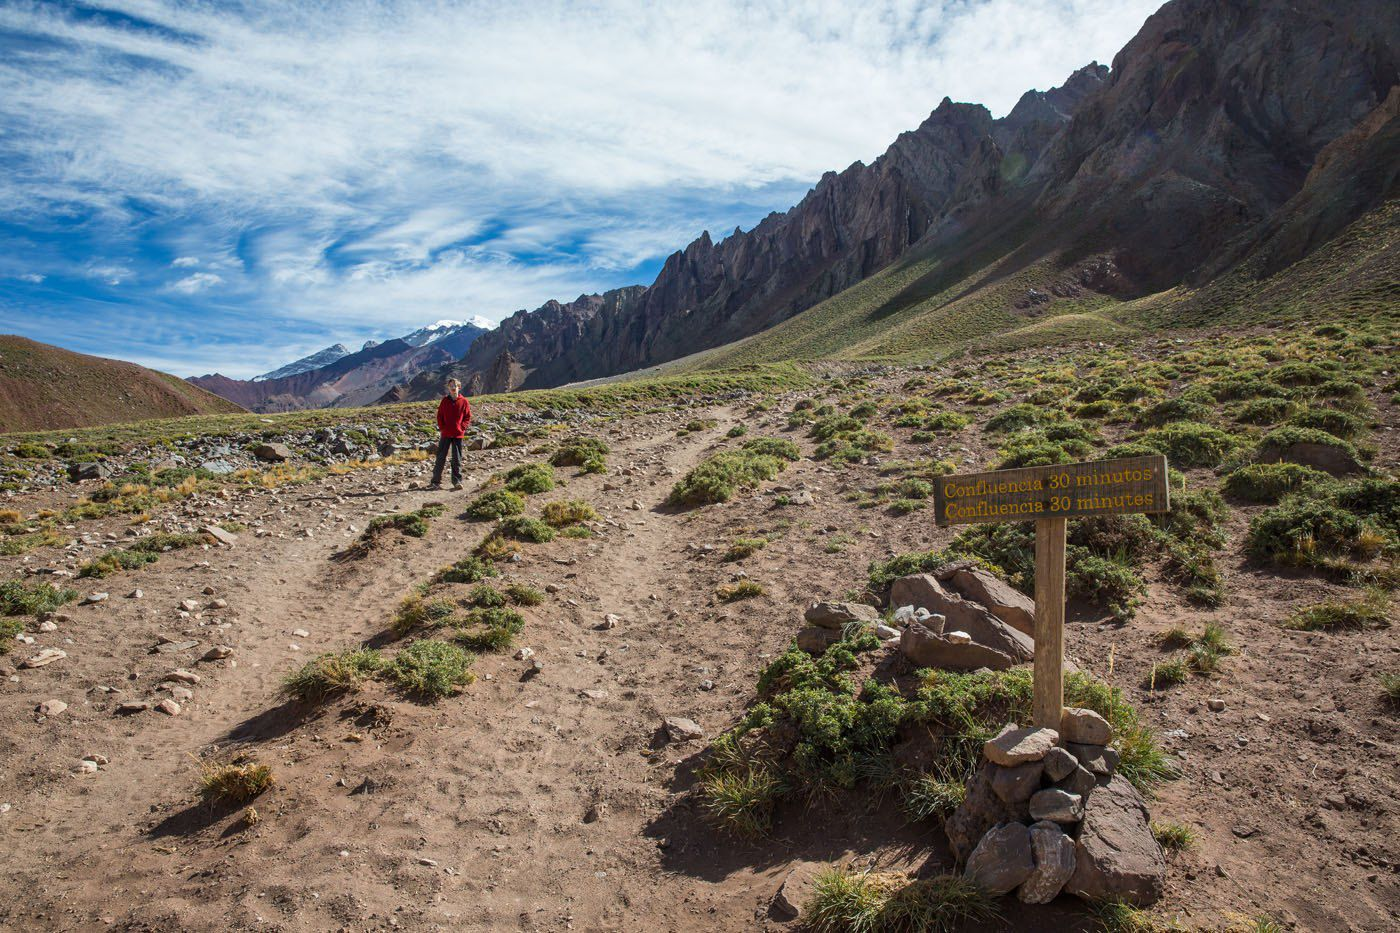 Hiking to Aconcagua Confluencia